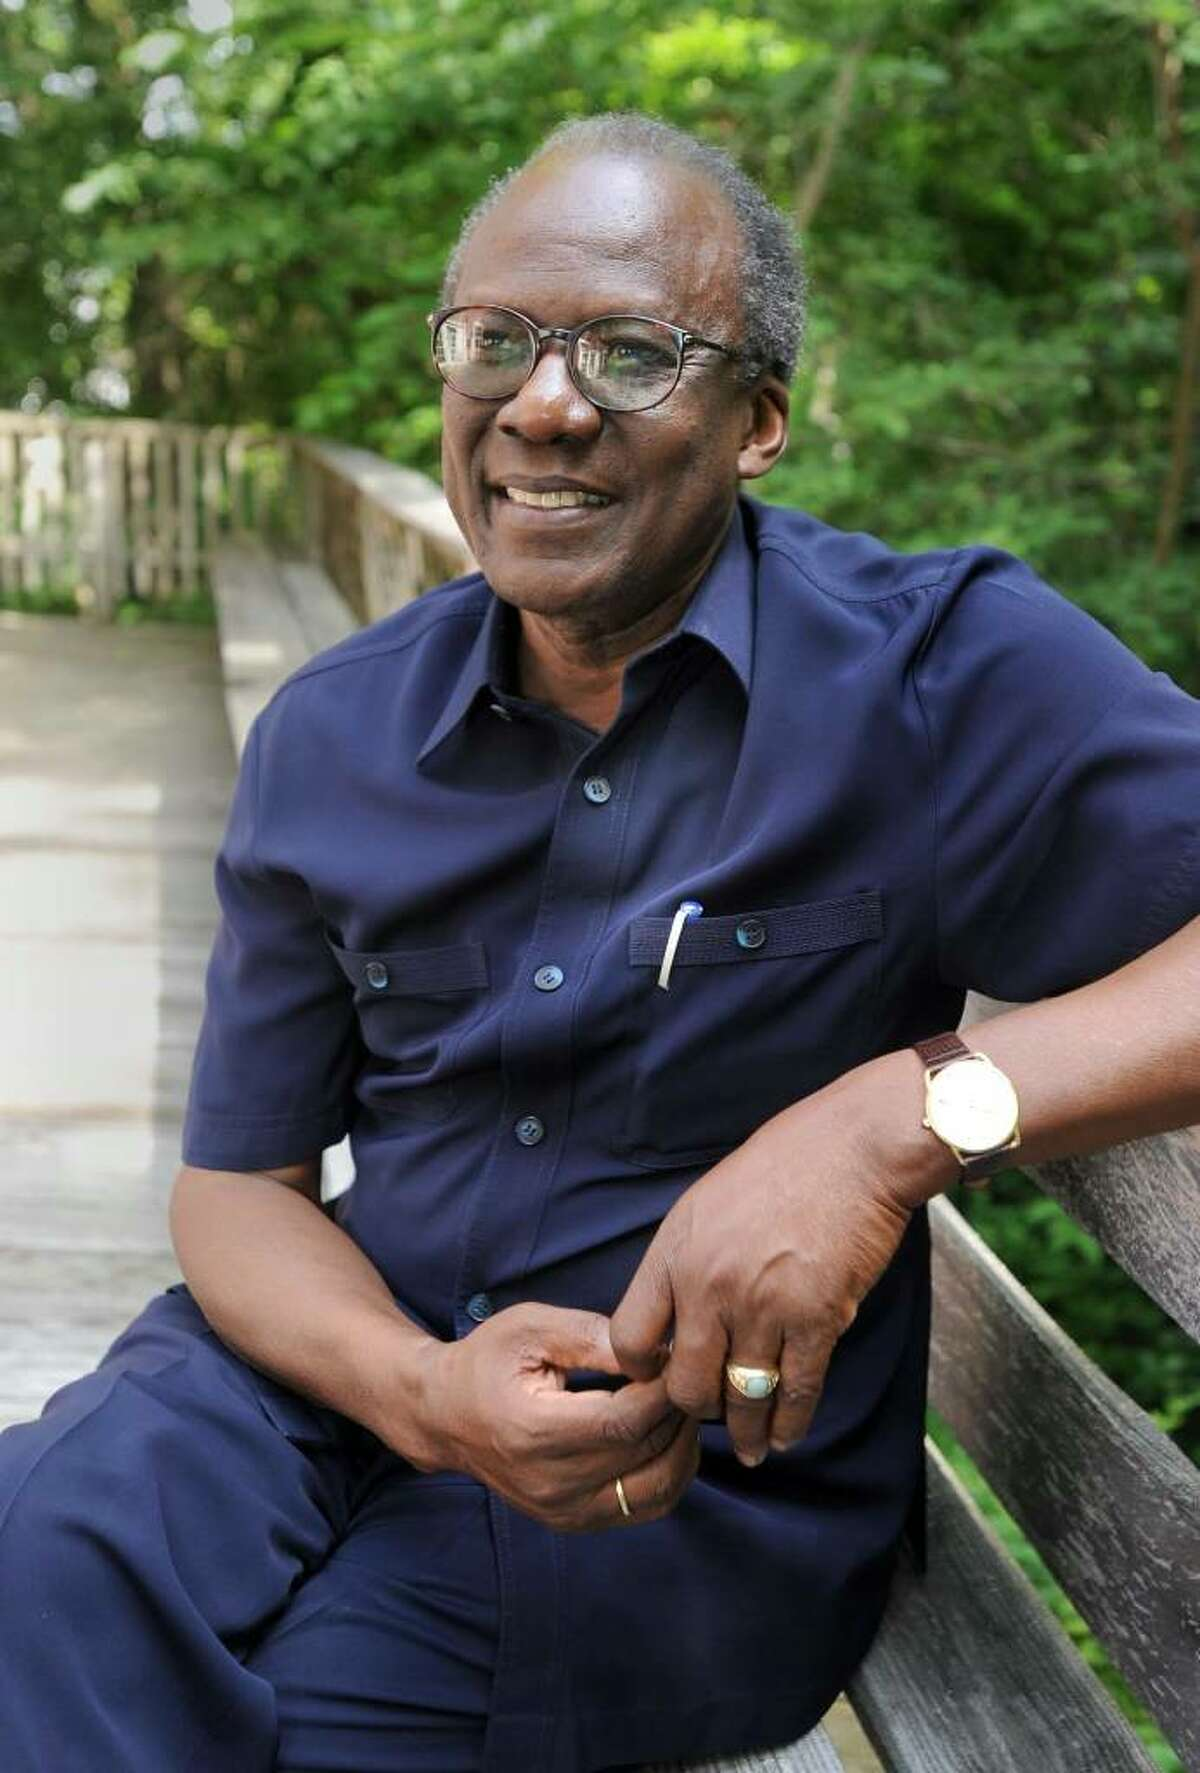 Francis G. Okelo of New Milford is a former ambassador and United Nationss pecial envoy. He will be speaking at the Merryall Center for the Arts in New Milford on July 24. Photo Taken Monday, July 12, 2010.